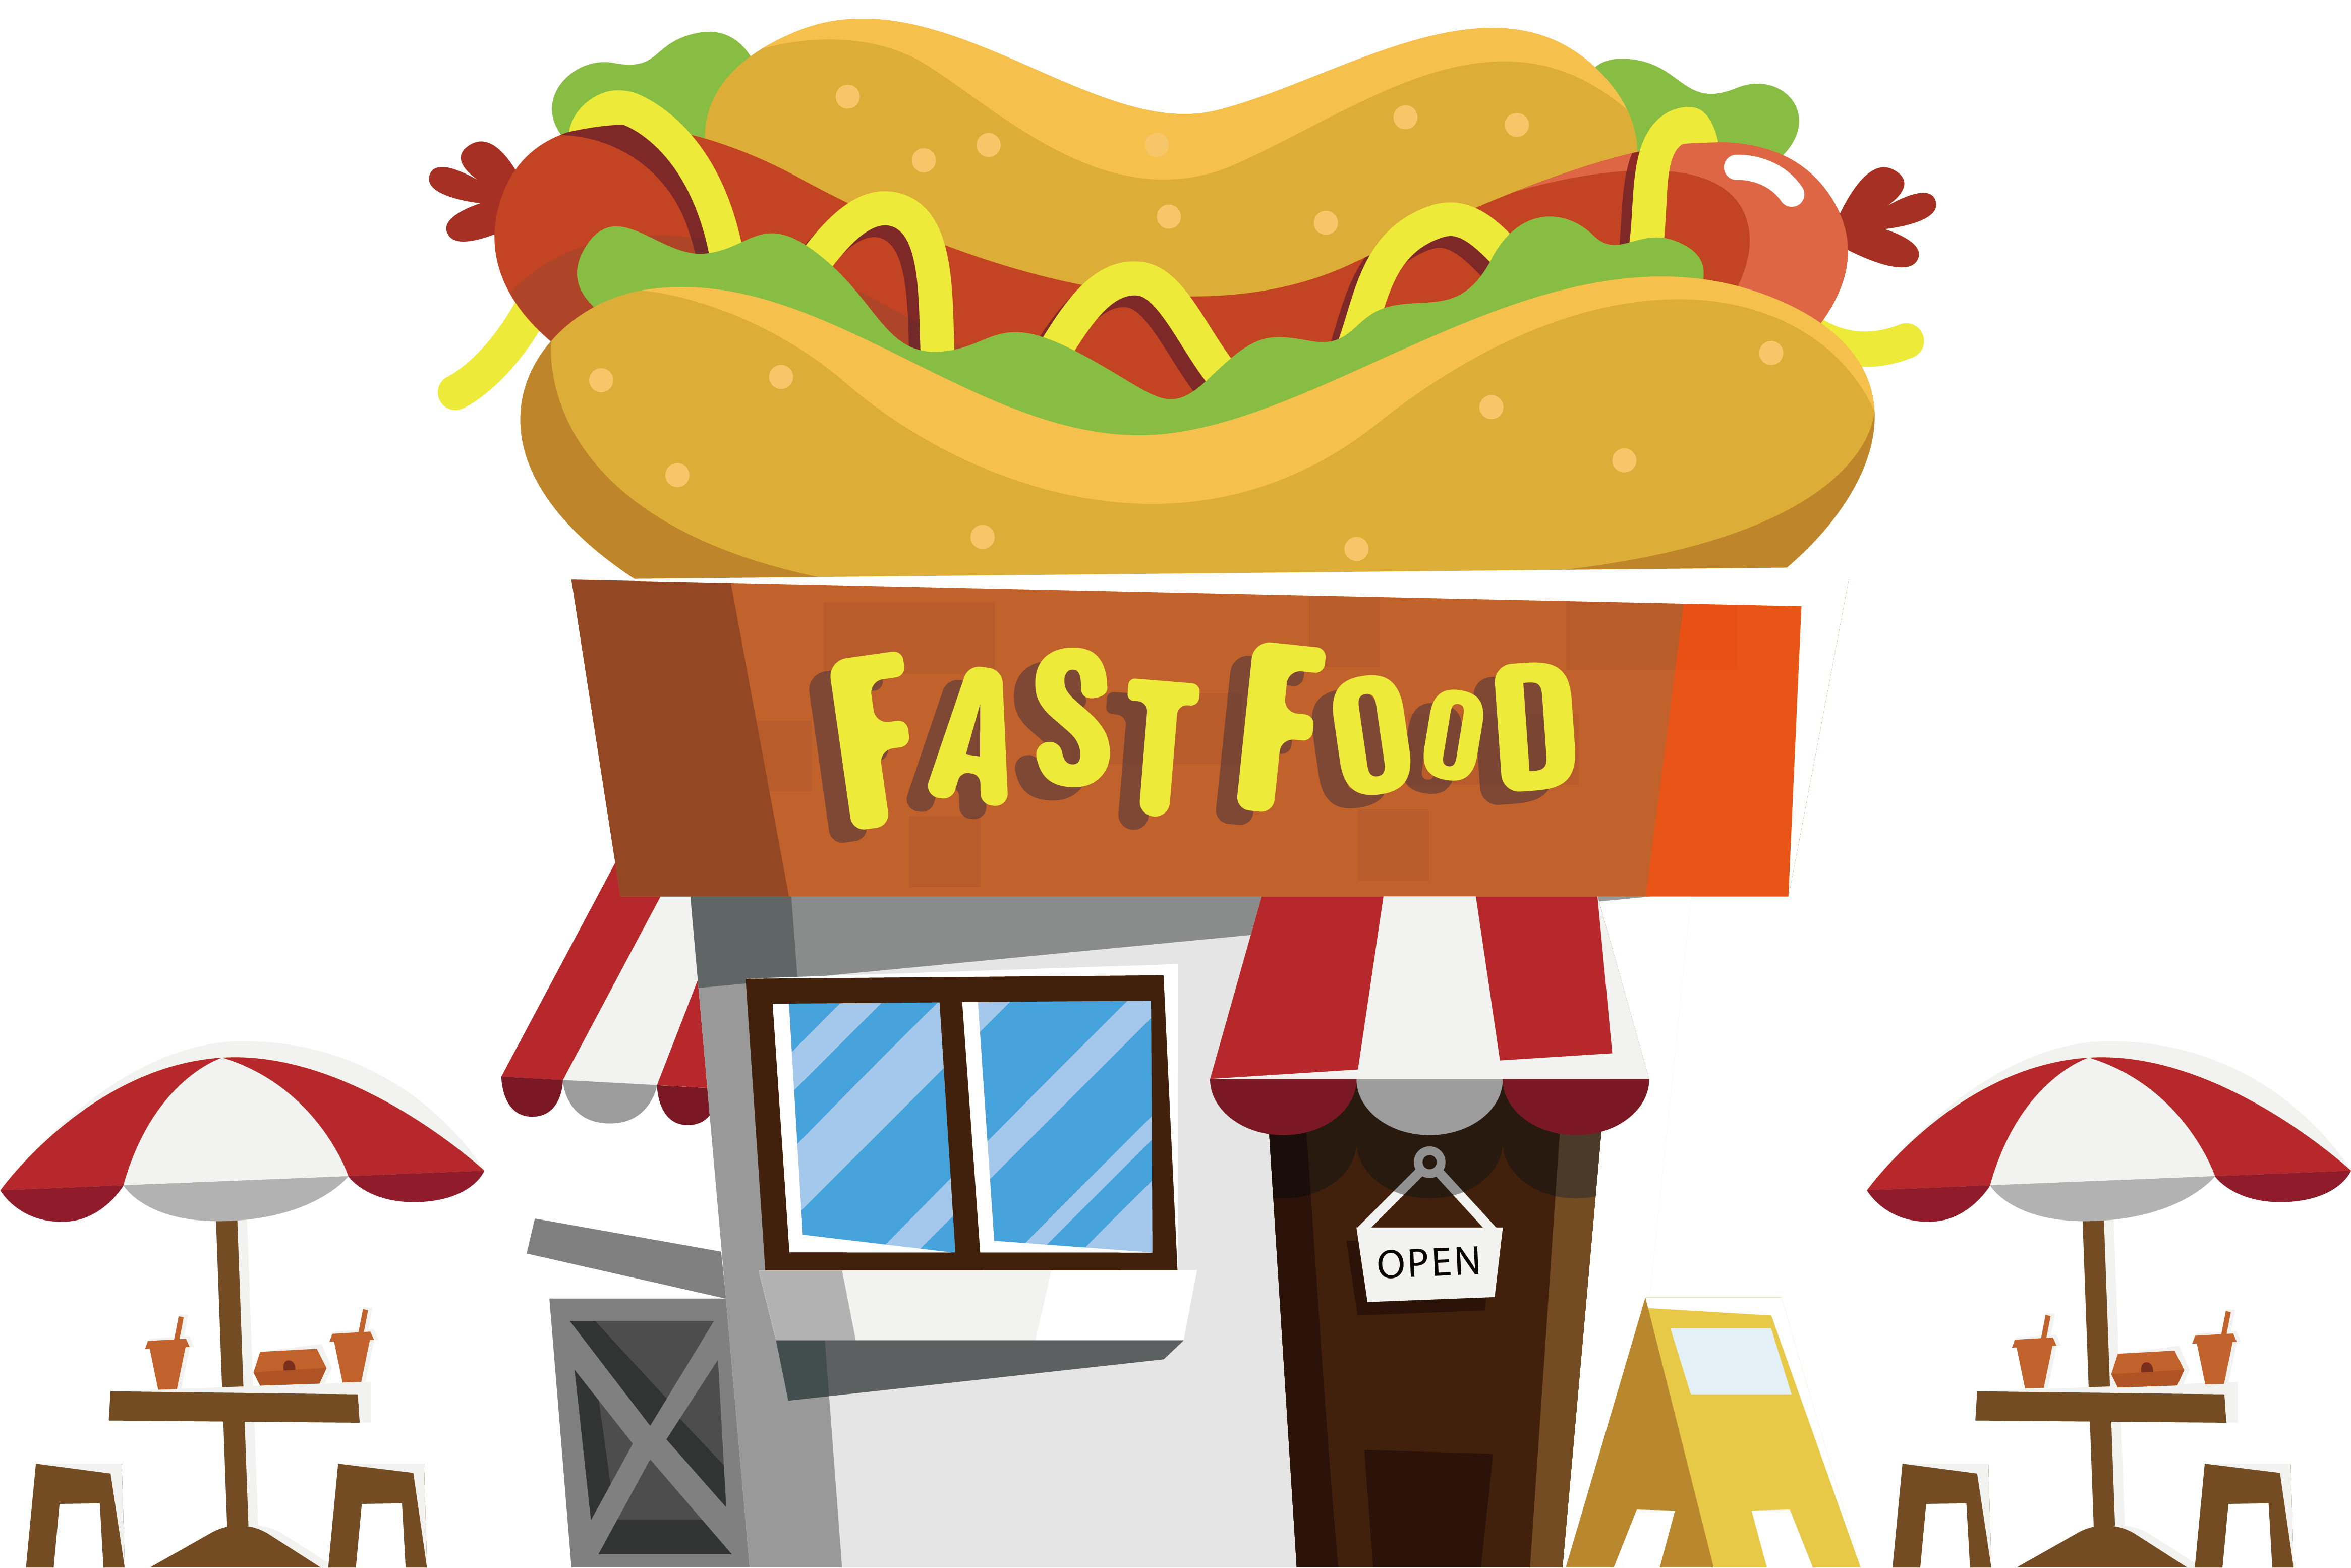 Free cartoon hot dog clipart clipart library library Hot dog Fast food restaurant Buffet - Hot dog snack bar 4661*3109 ... clipart library library